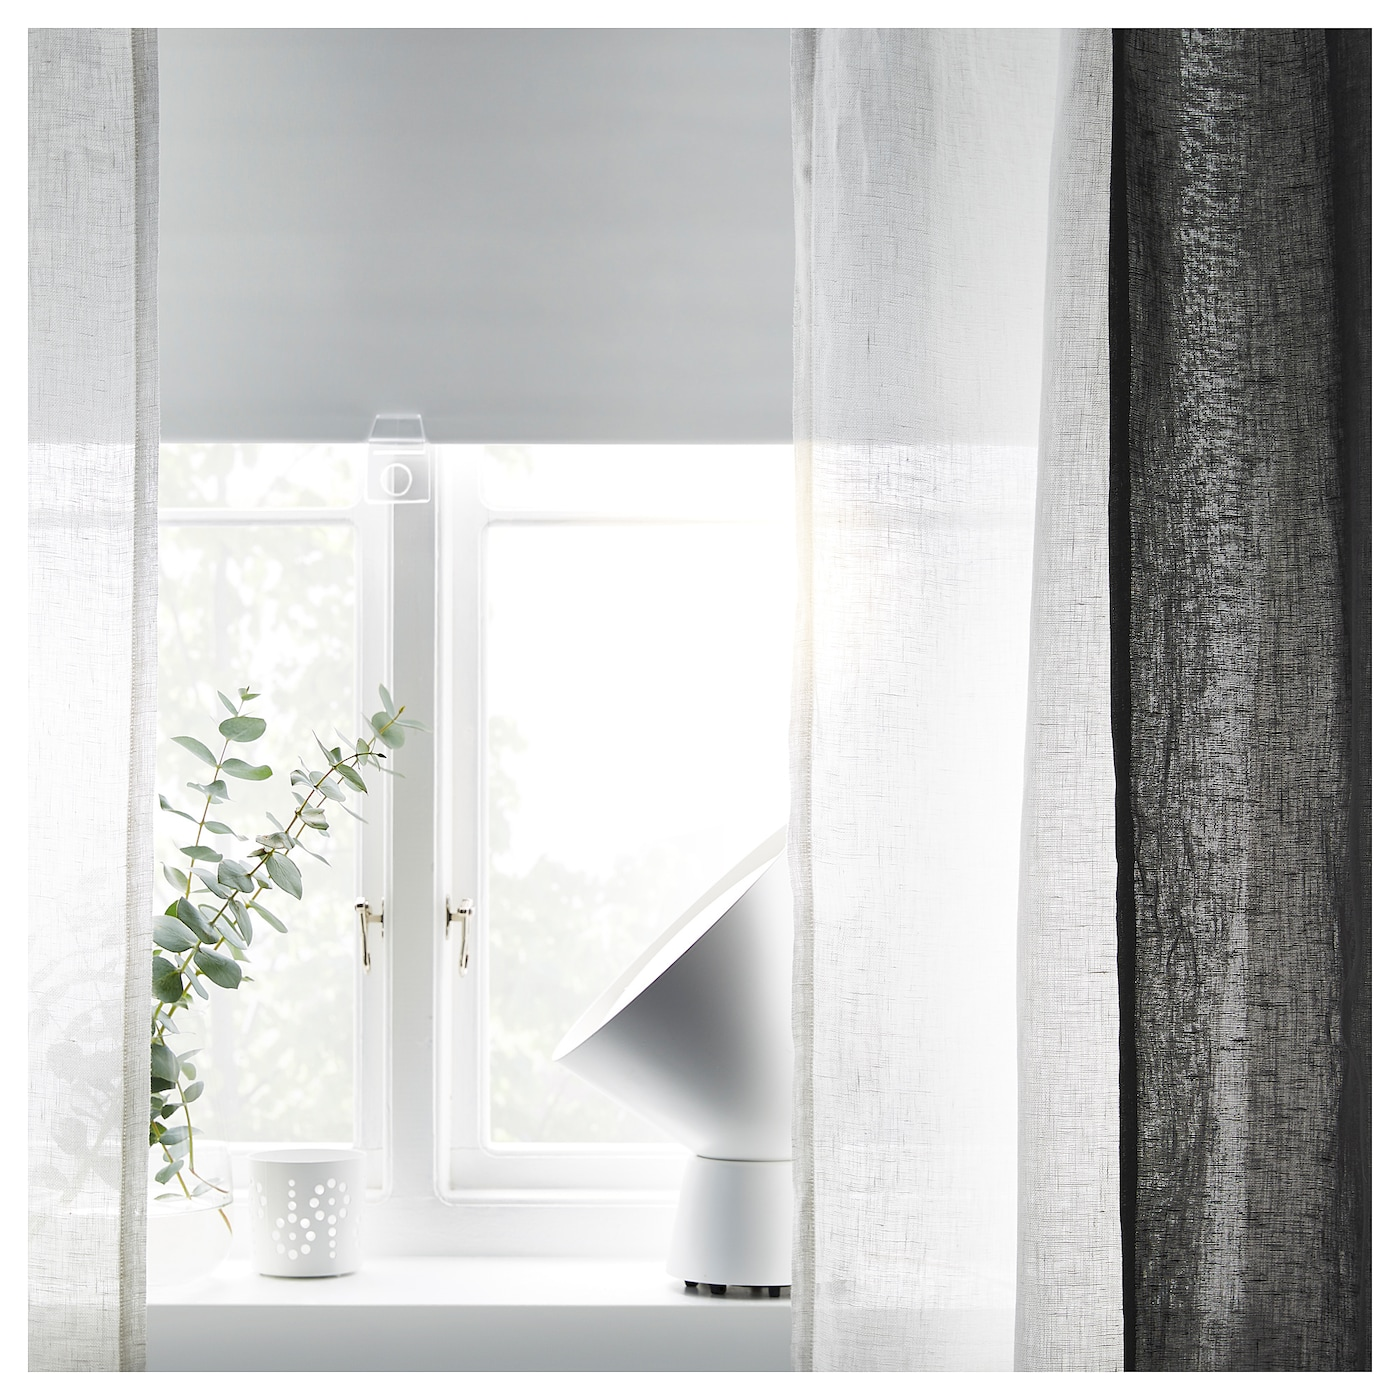 IKEA TUPPLUR block-out roller blind The blind is cordless for increased child safety.